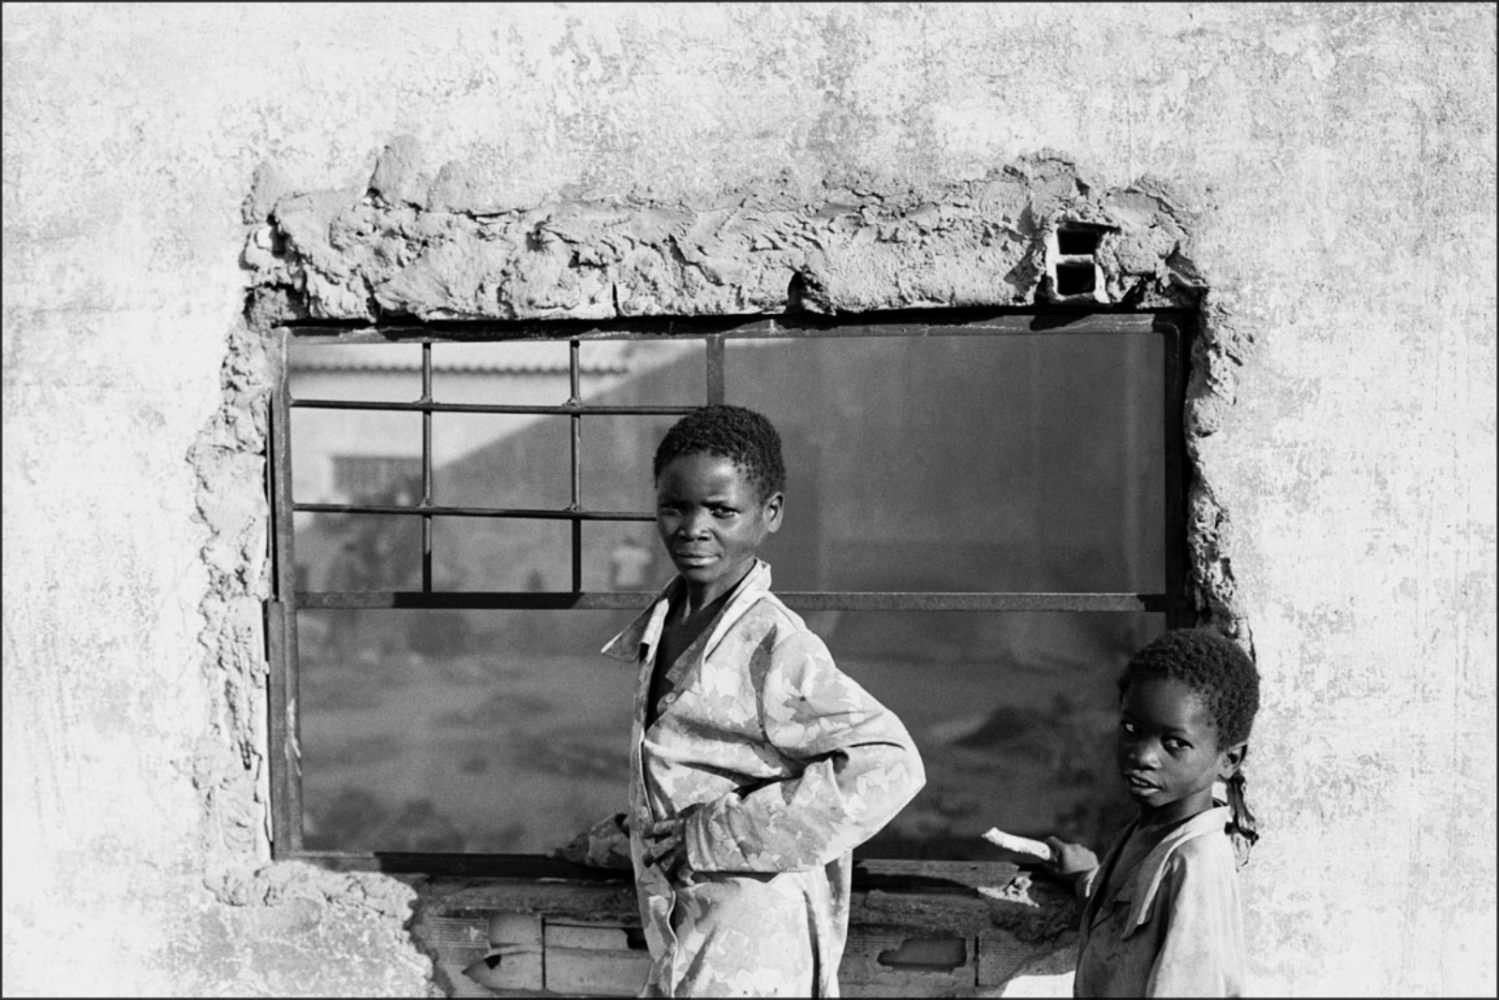 Two Boys Framed by Rubble, Caala, Angola, July 2000